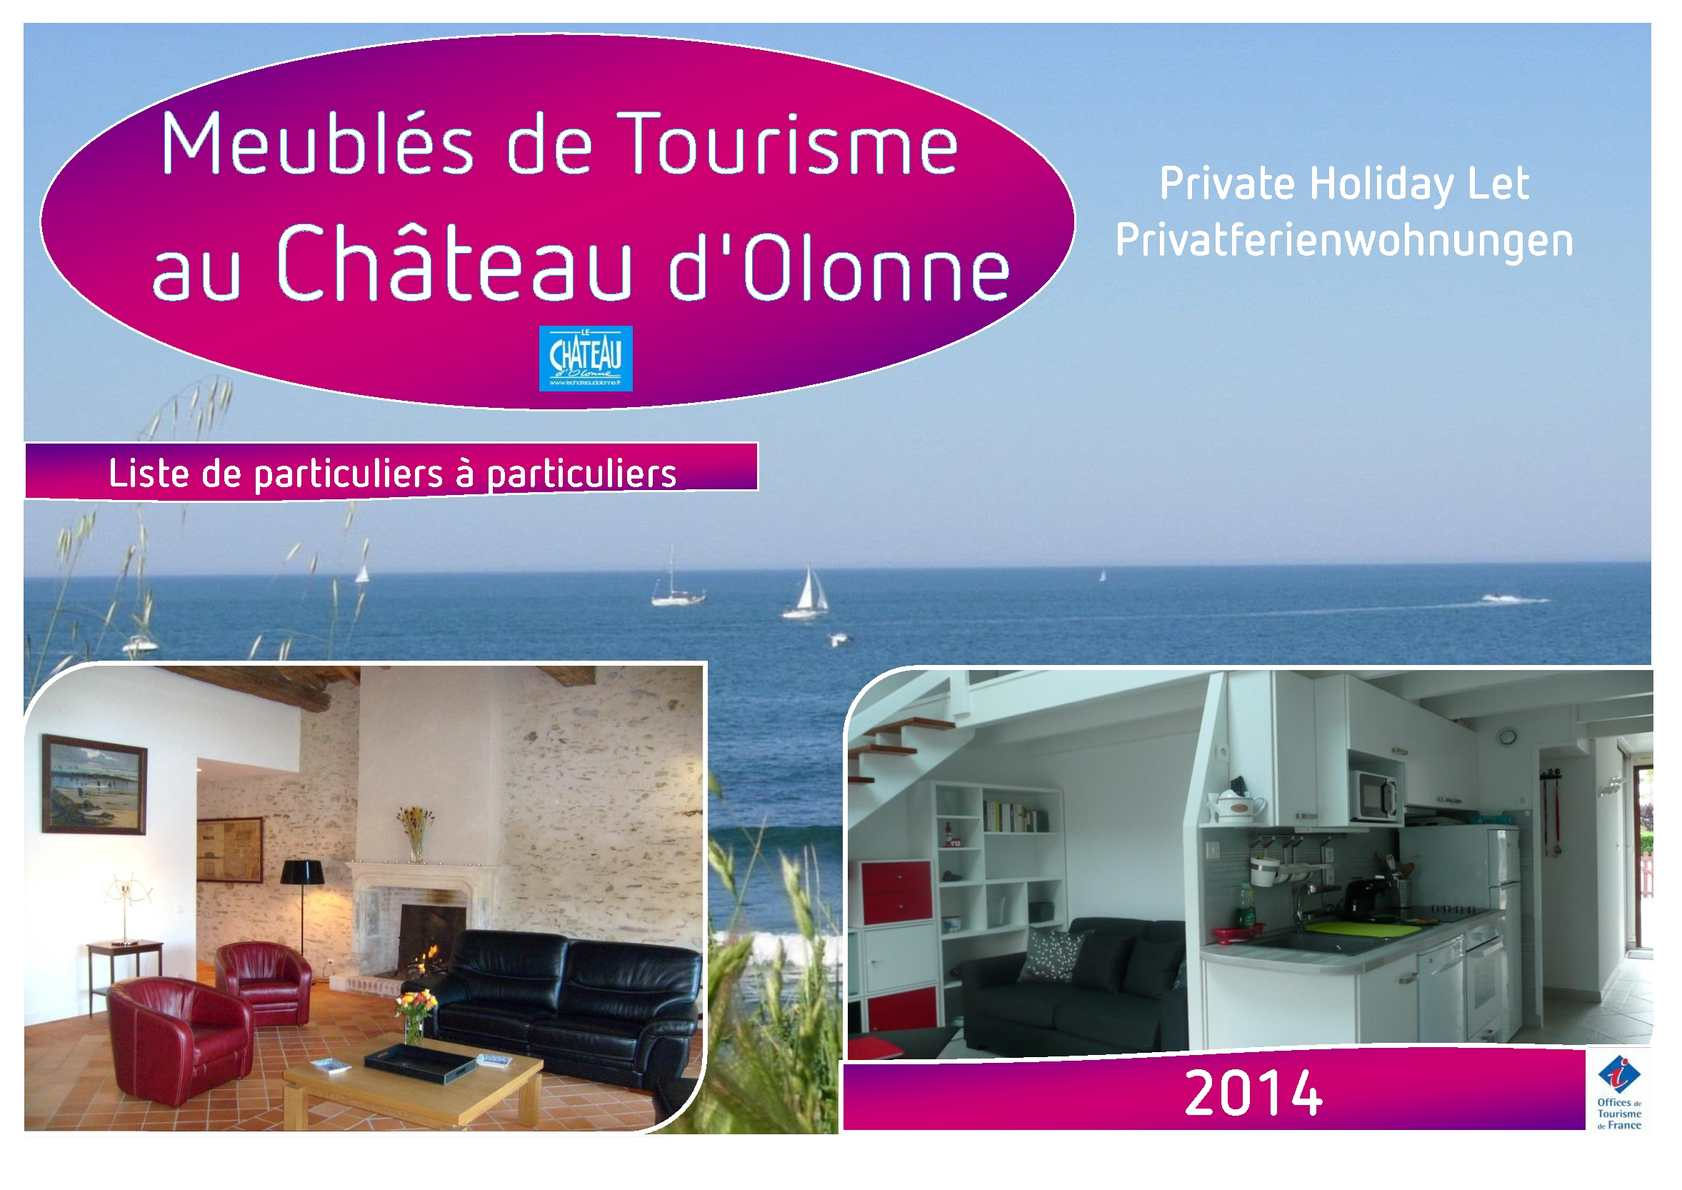 calam o liste des meubl s de tourisme au ch teau d 39 olonne pour 2014. Black Bedroom Furniture Sets. Home Design Ideas